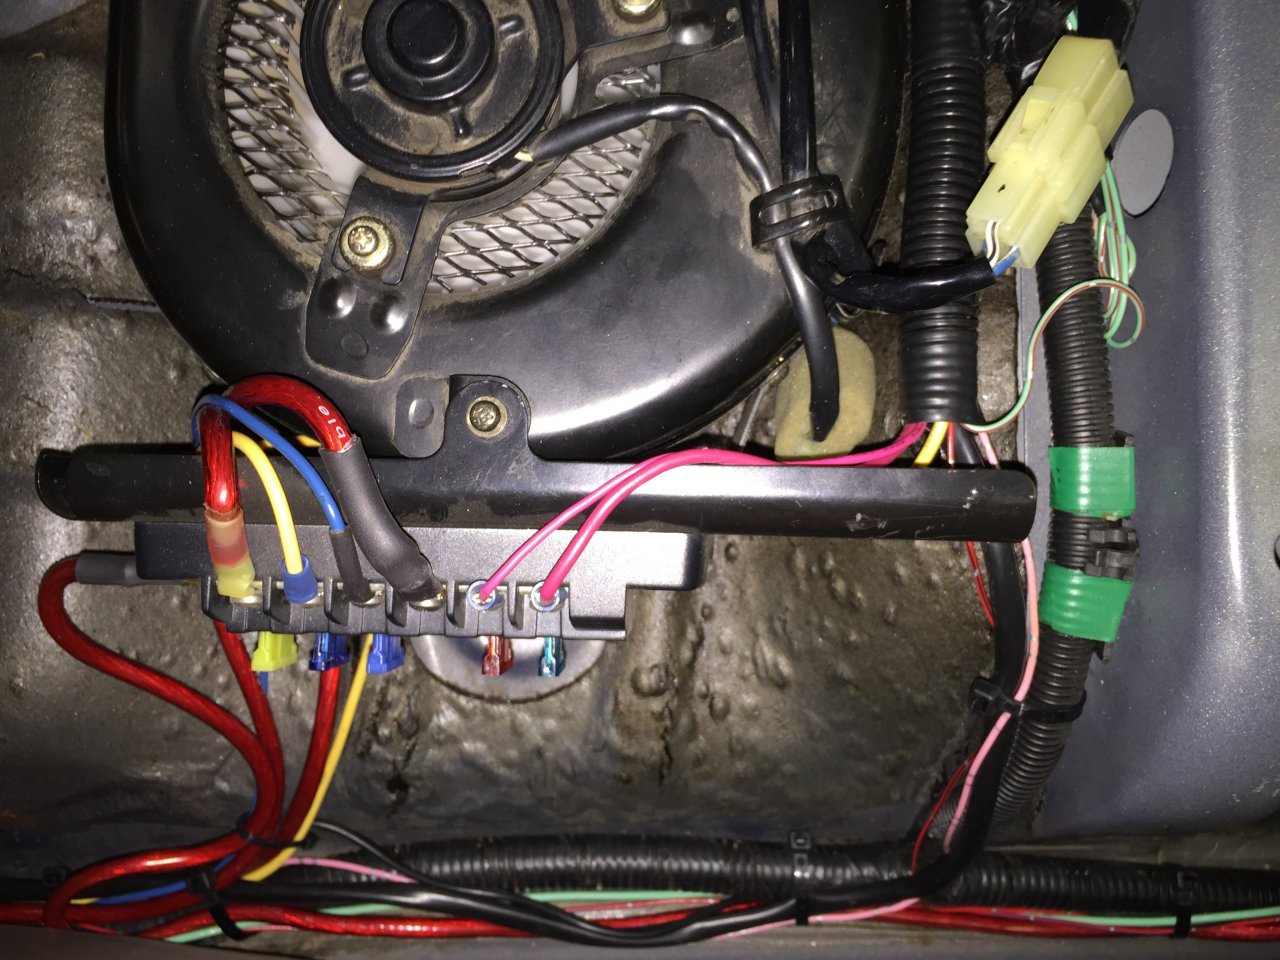 Wire Management Cleaning Up My Mess Of Mods Ih8mud Forum Under Carpet Flat Wiring System Additionally 3 Img 1715